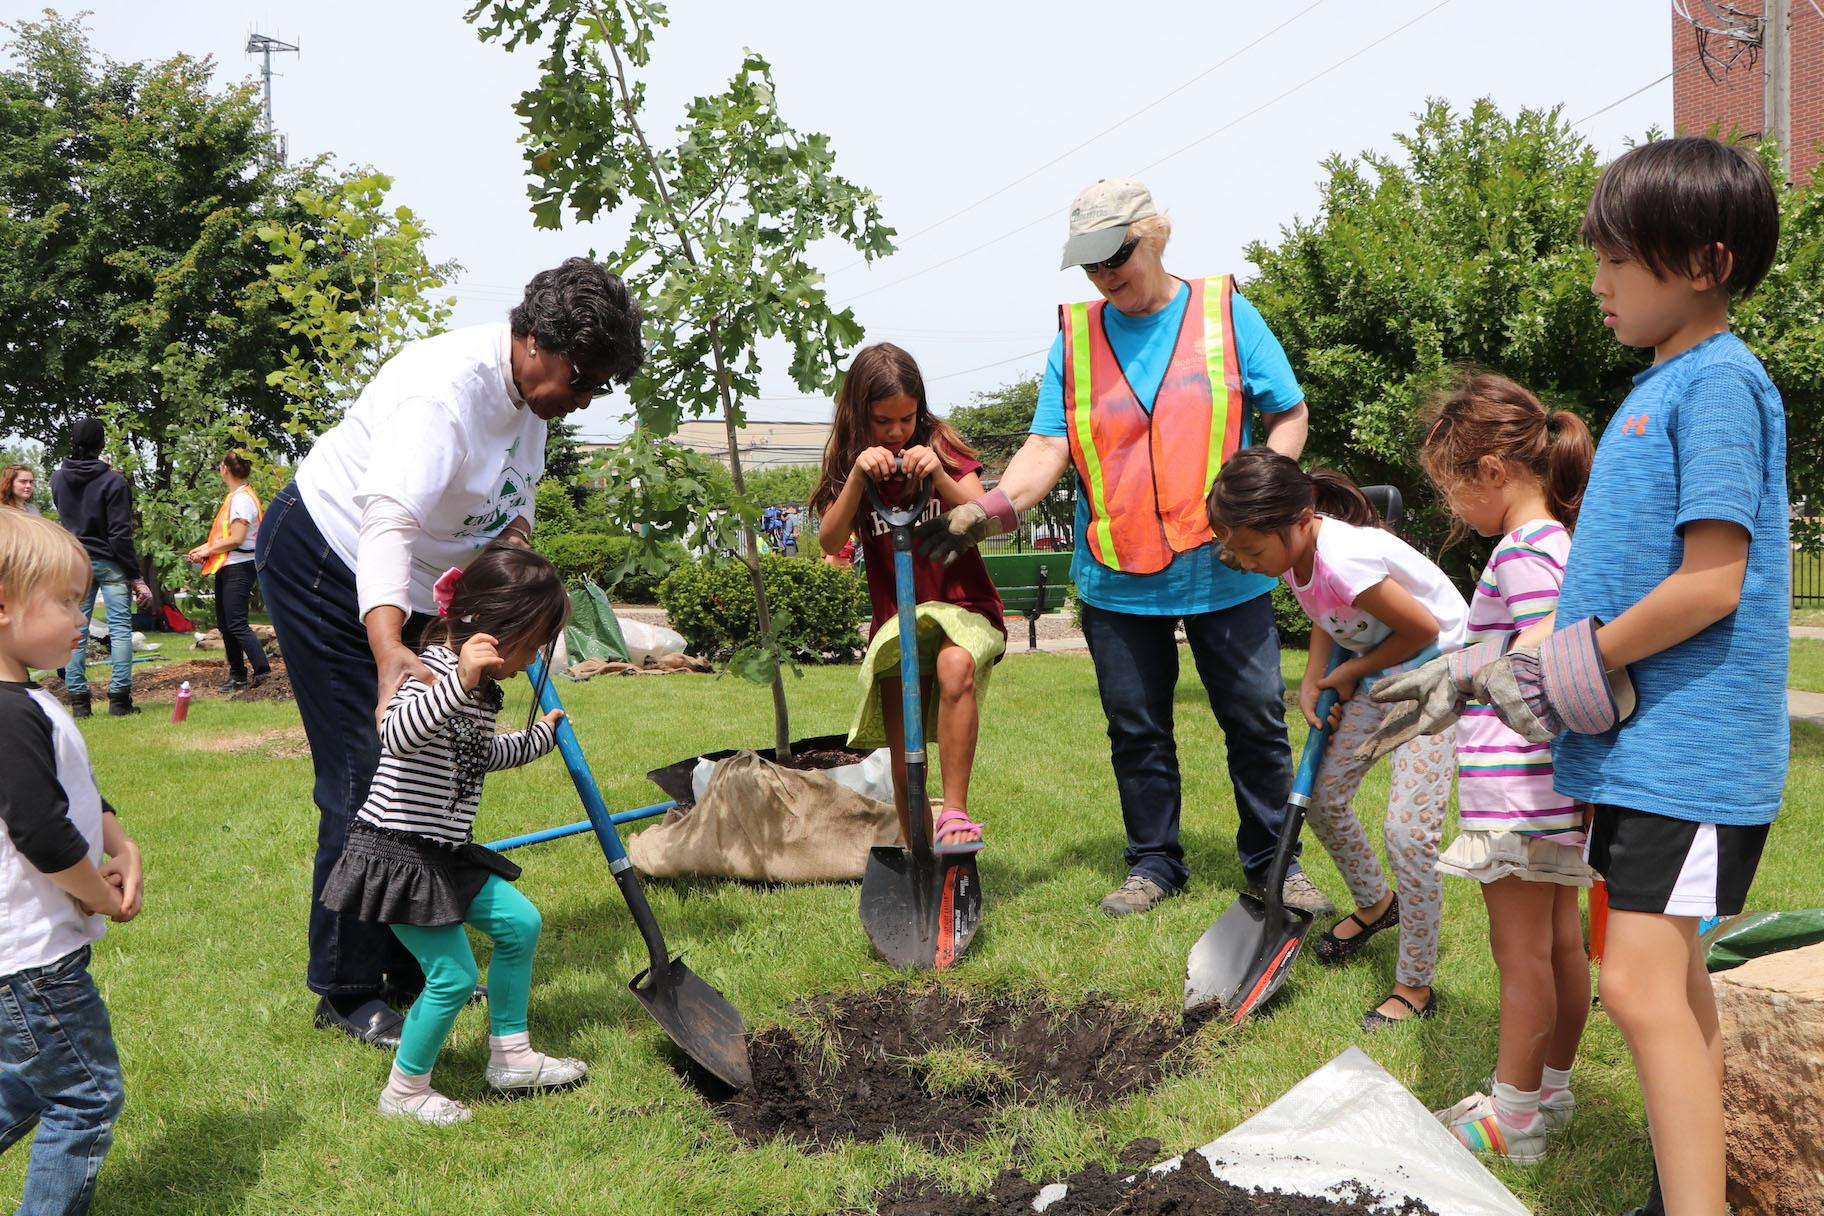 Volunteers plant trees following the performance by Grammy-winning musician Yo-Yo Ma. (Evan Garcia / WTTW)